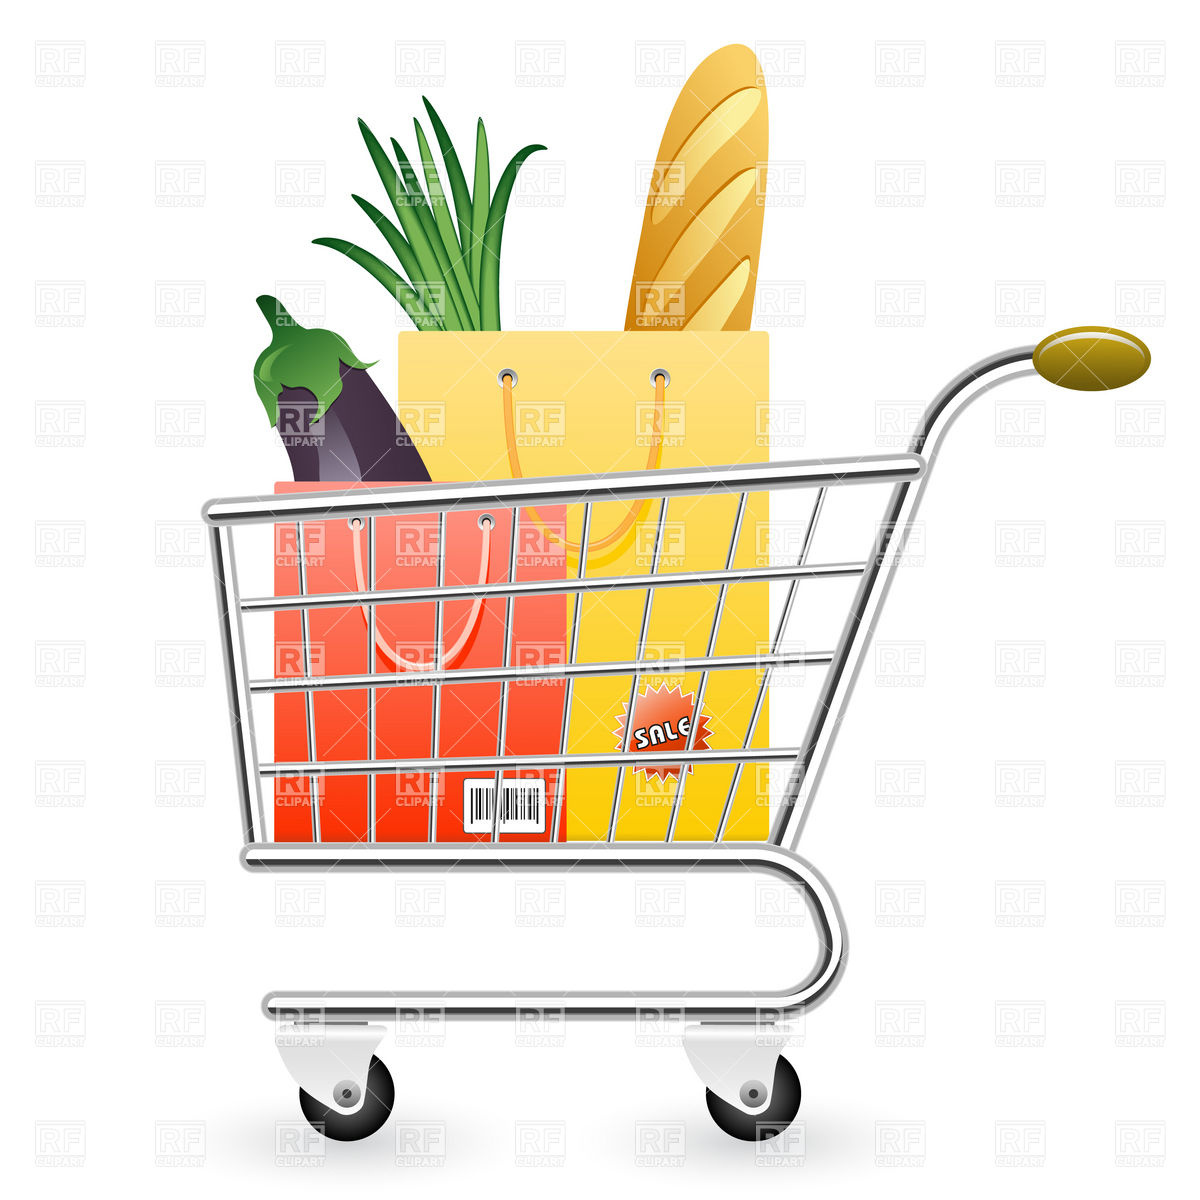 svg royalty free download Free download best . Supermarket clipart full grocery cart